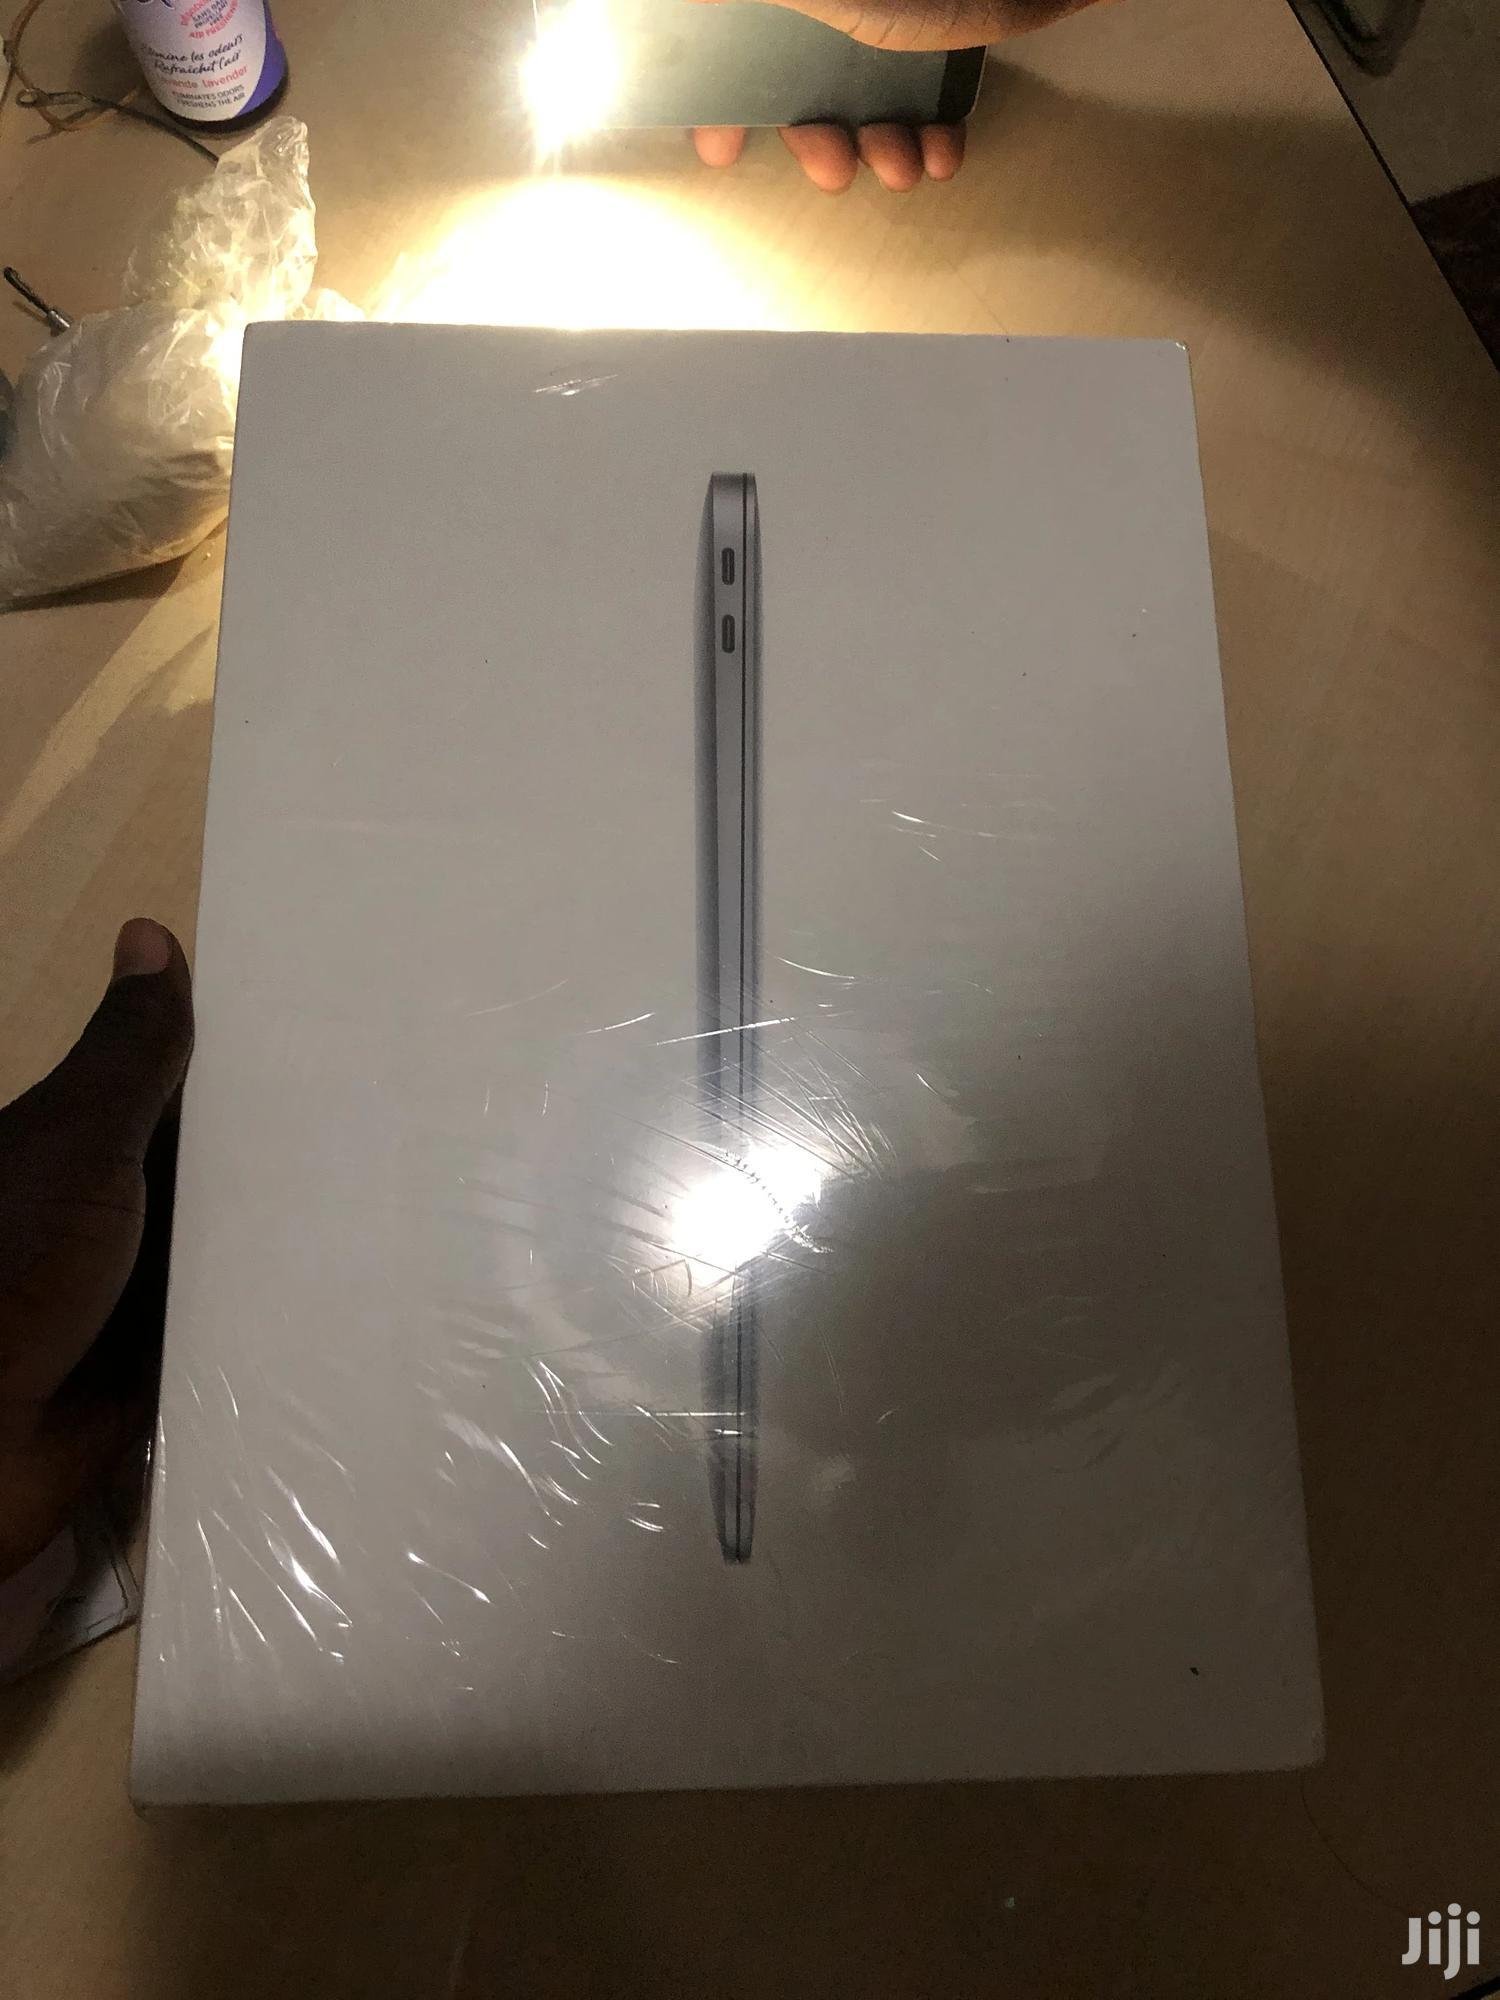 New Laptop Apple MacBook Air 8GB Intel Core i3 SSD 256GB | Laptops & Computers for sale in Kokomlemle, Greater Accra, Ghana